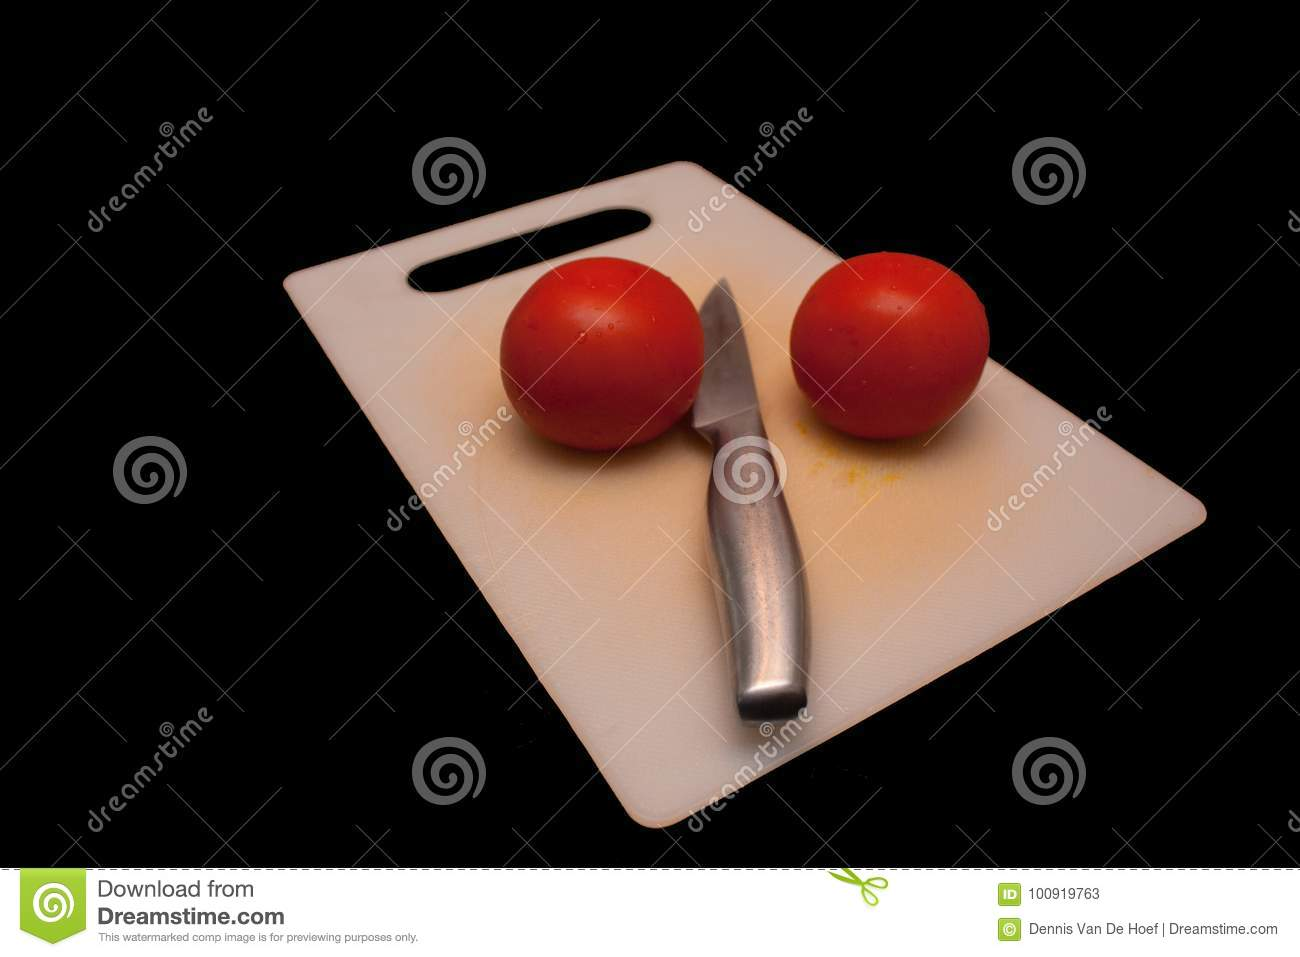 Tomatoes on a cutting board.